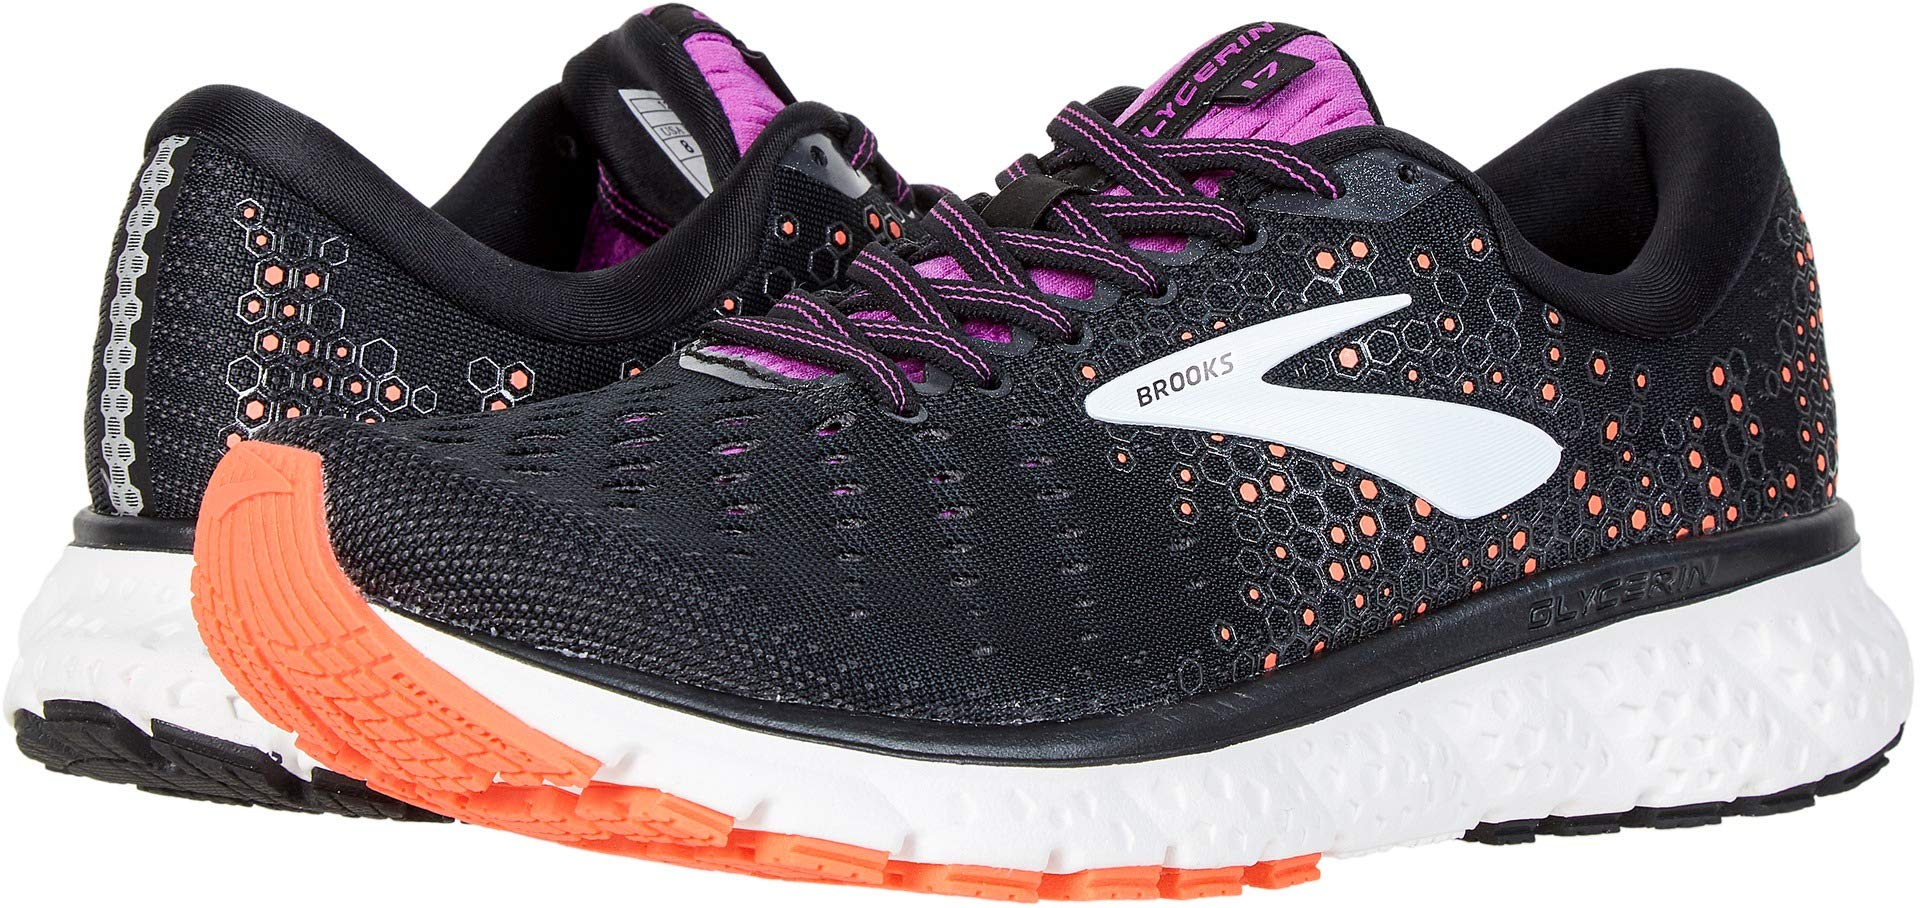 Brooks Women's Glycerin 17 Black/Fiery Coral/Purple 9 Wide US by Brooks